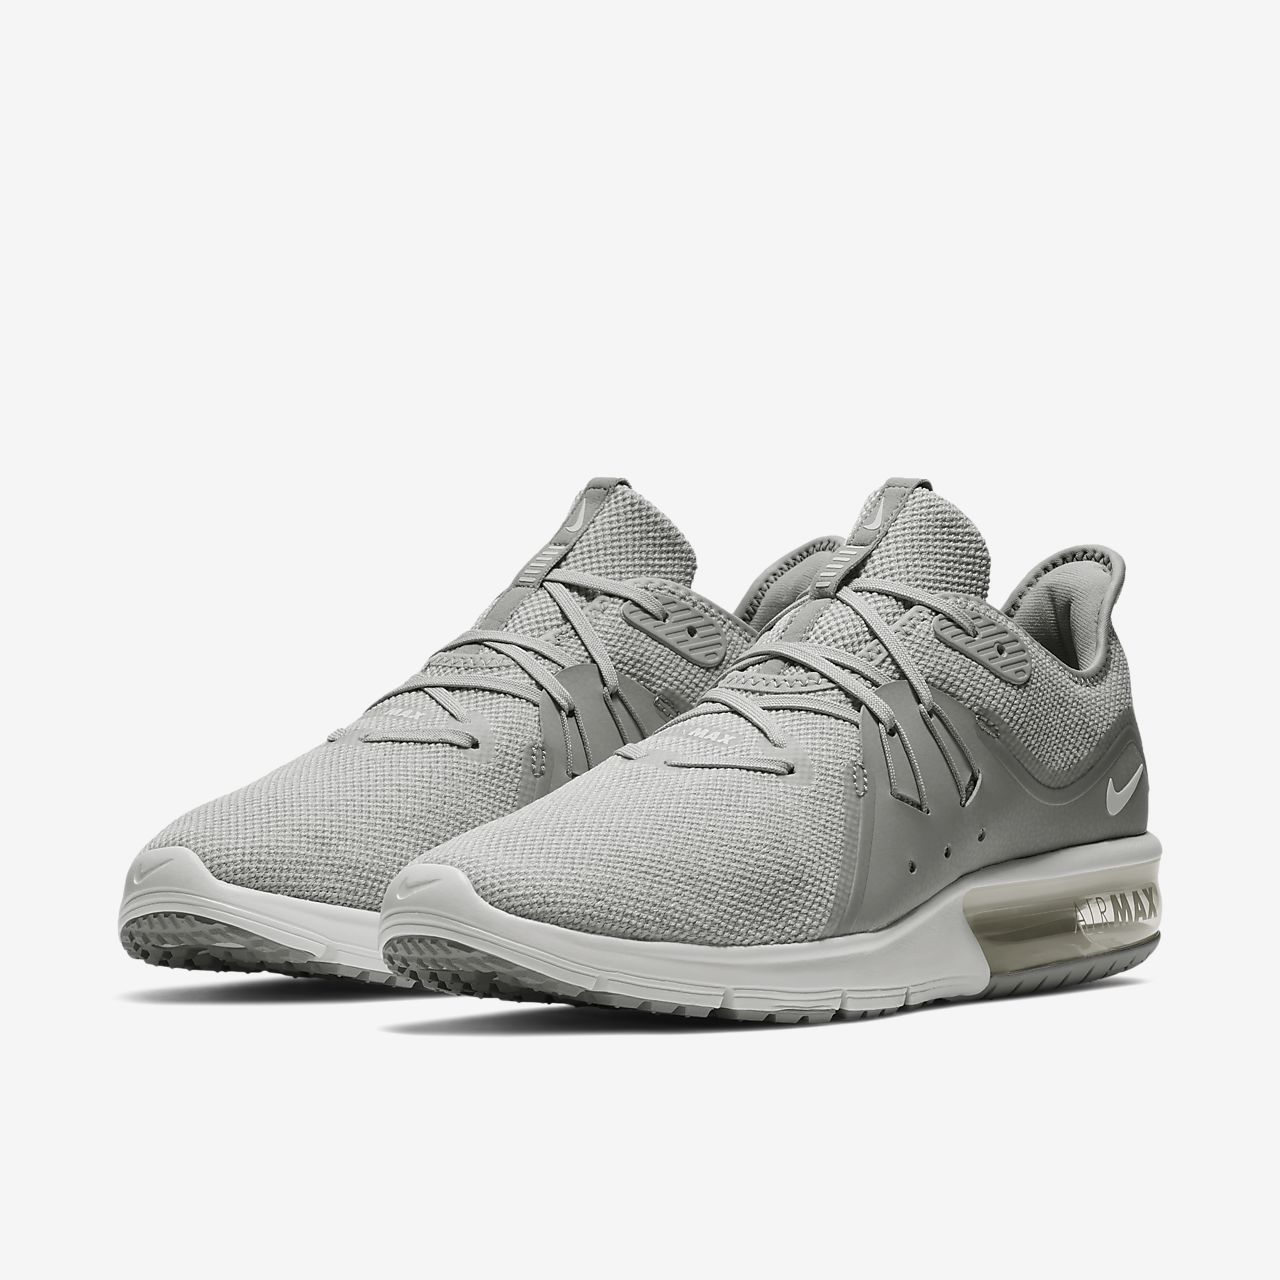 Chaussure Nike Air Max Sequent 3 pour Homme